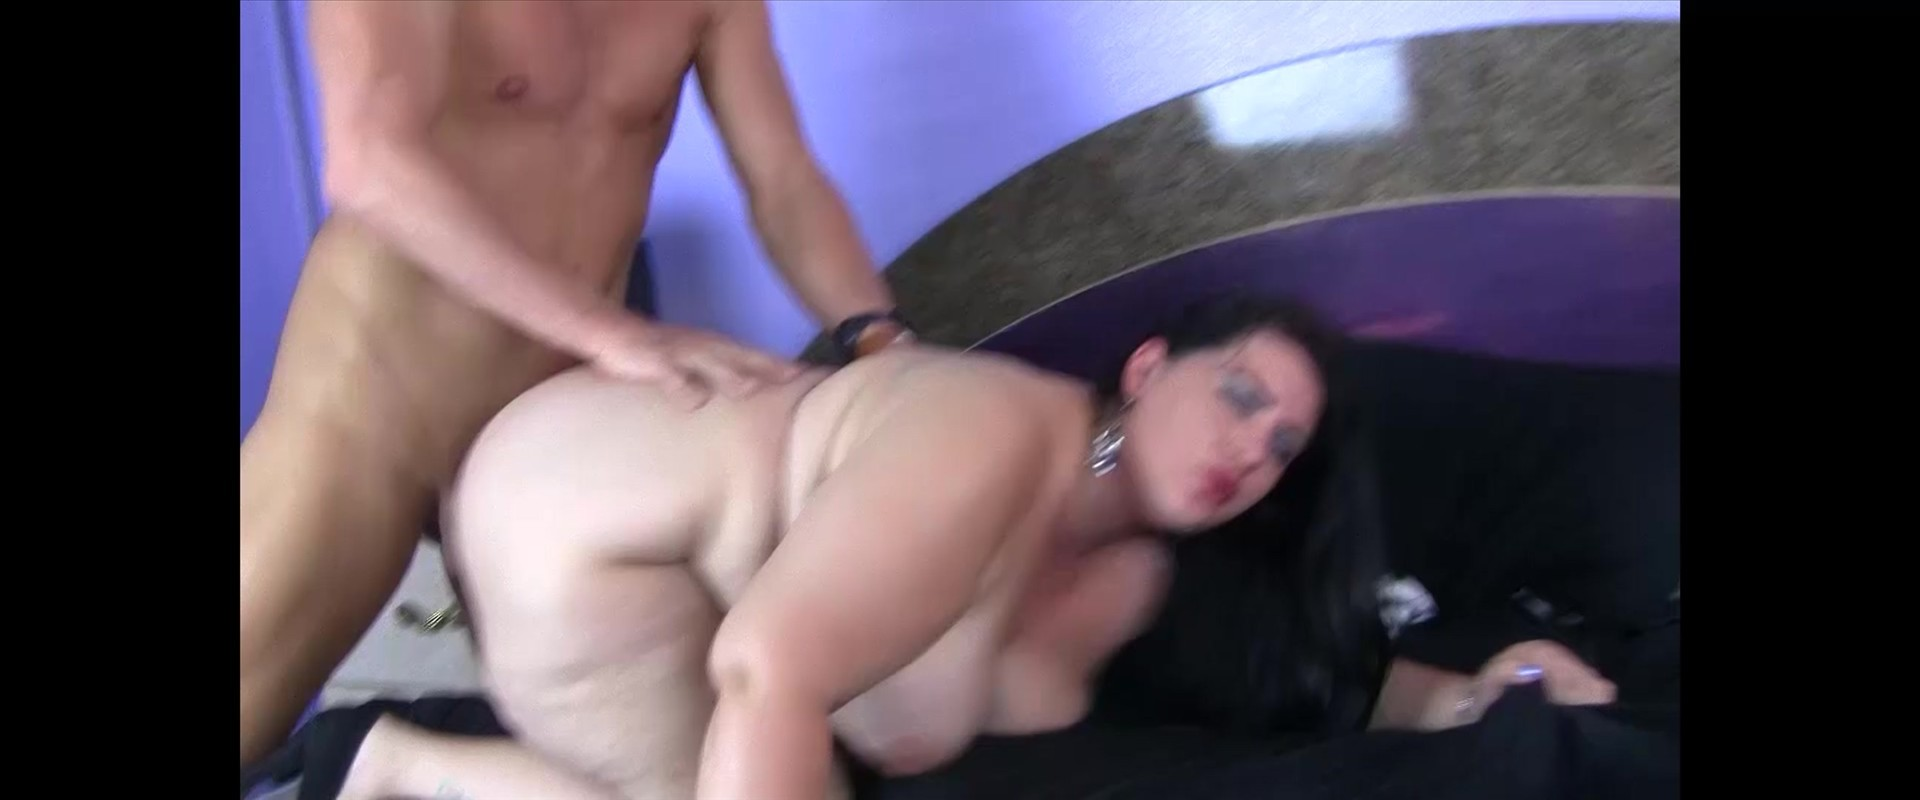 Move her ass hole